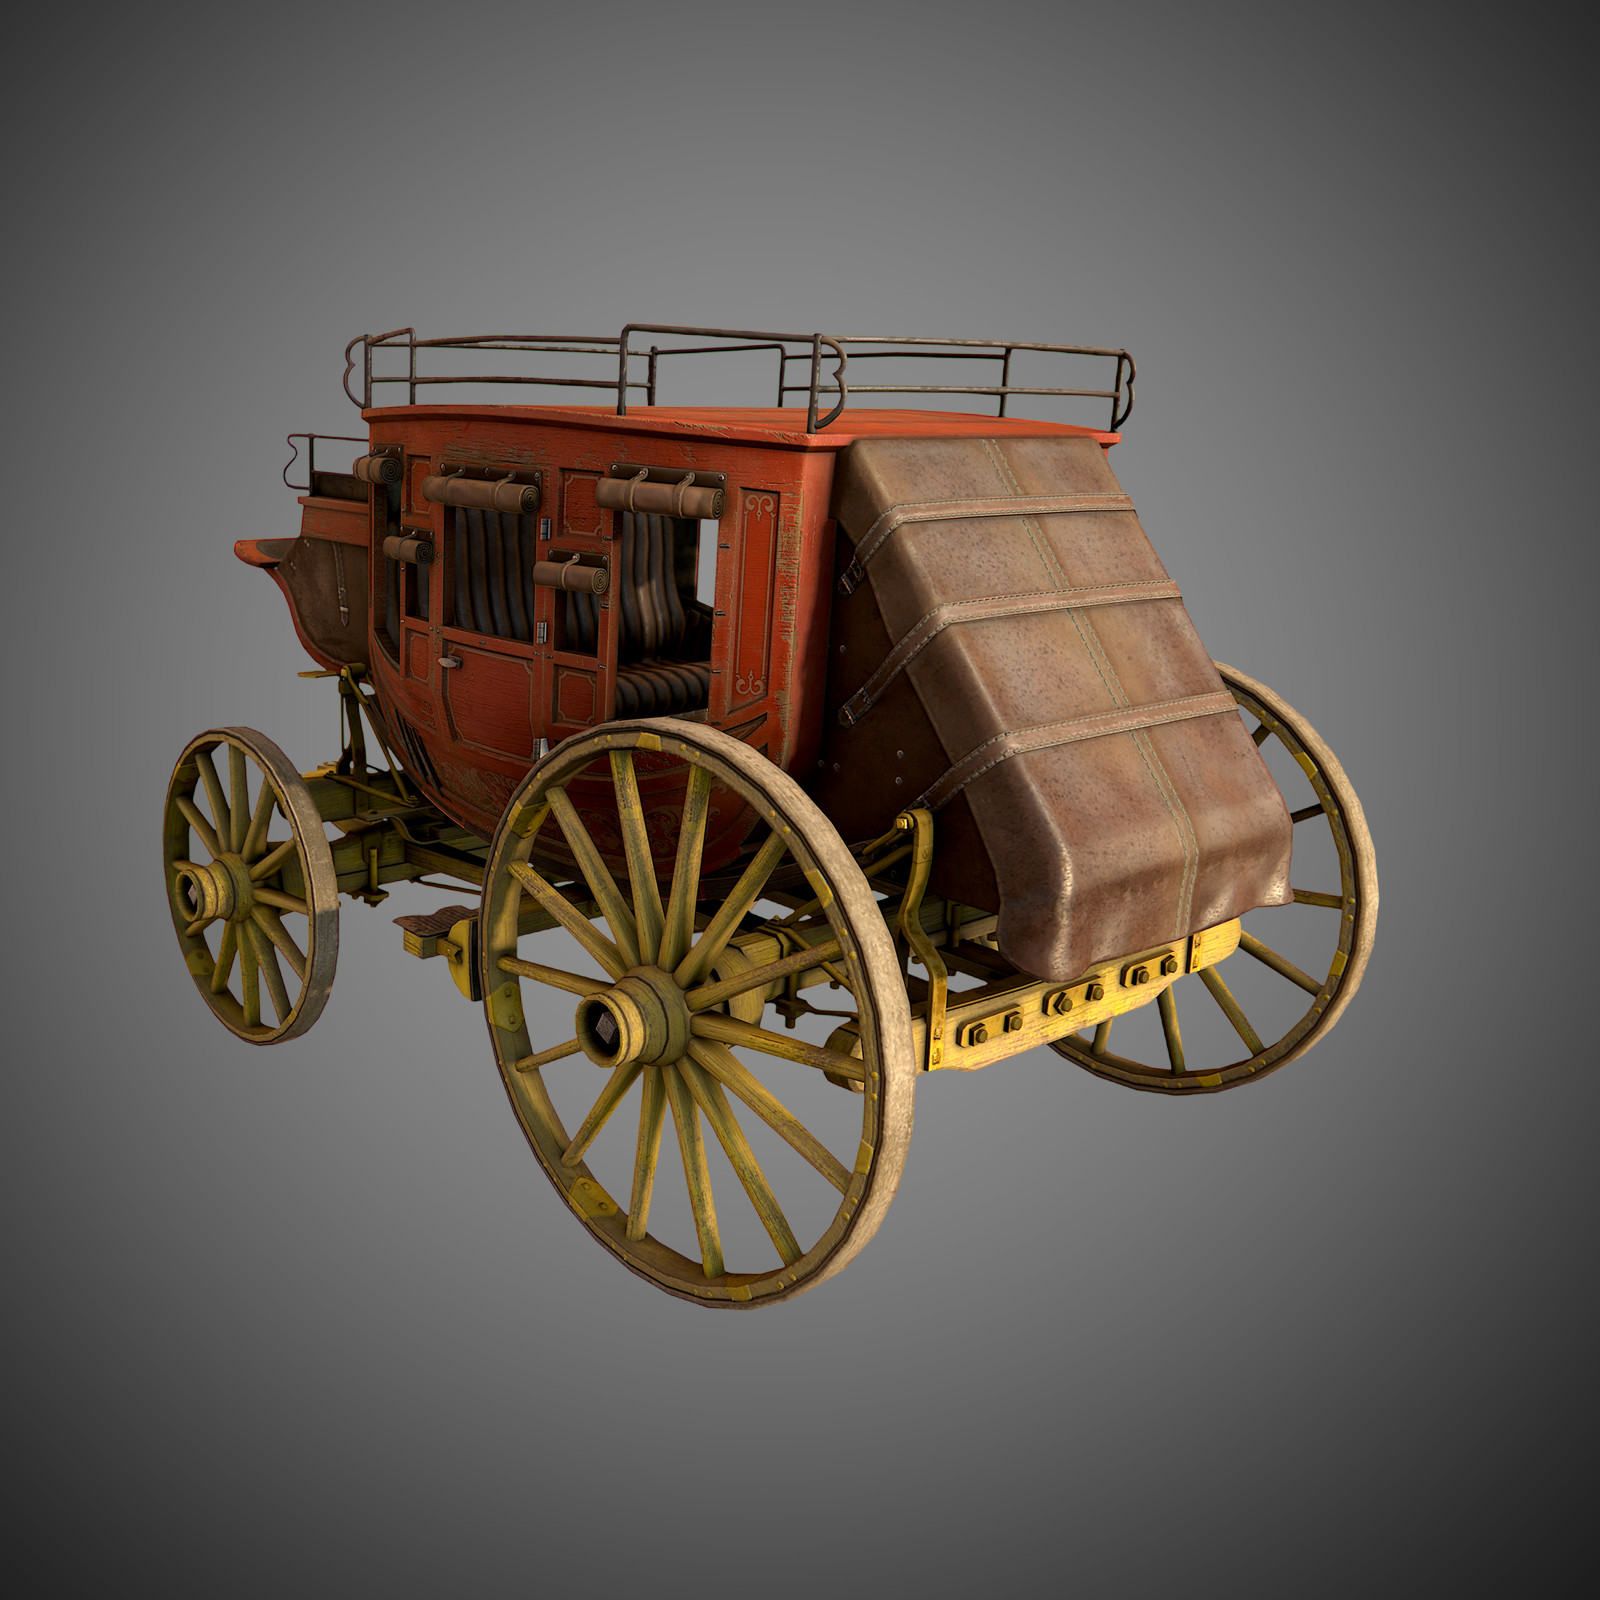 Paul fish stagecoach render 03